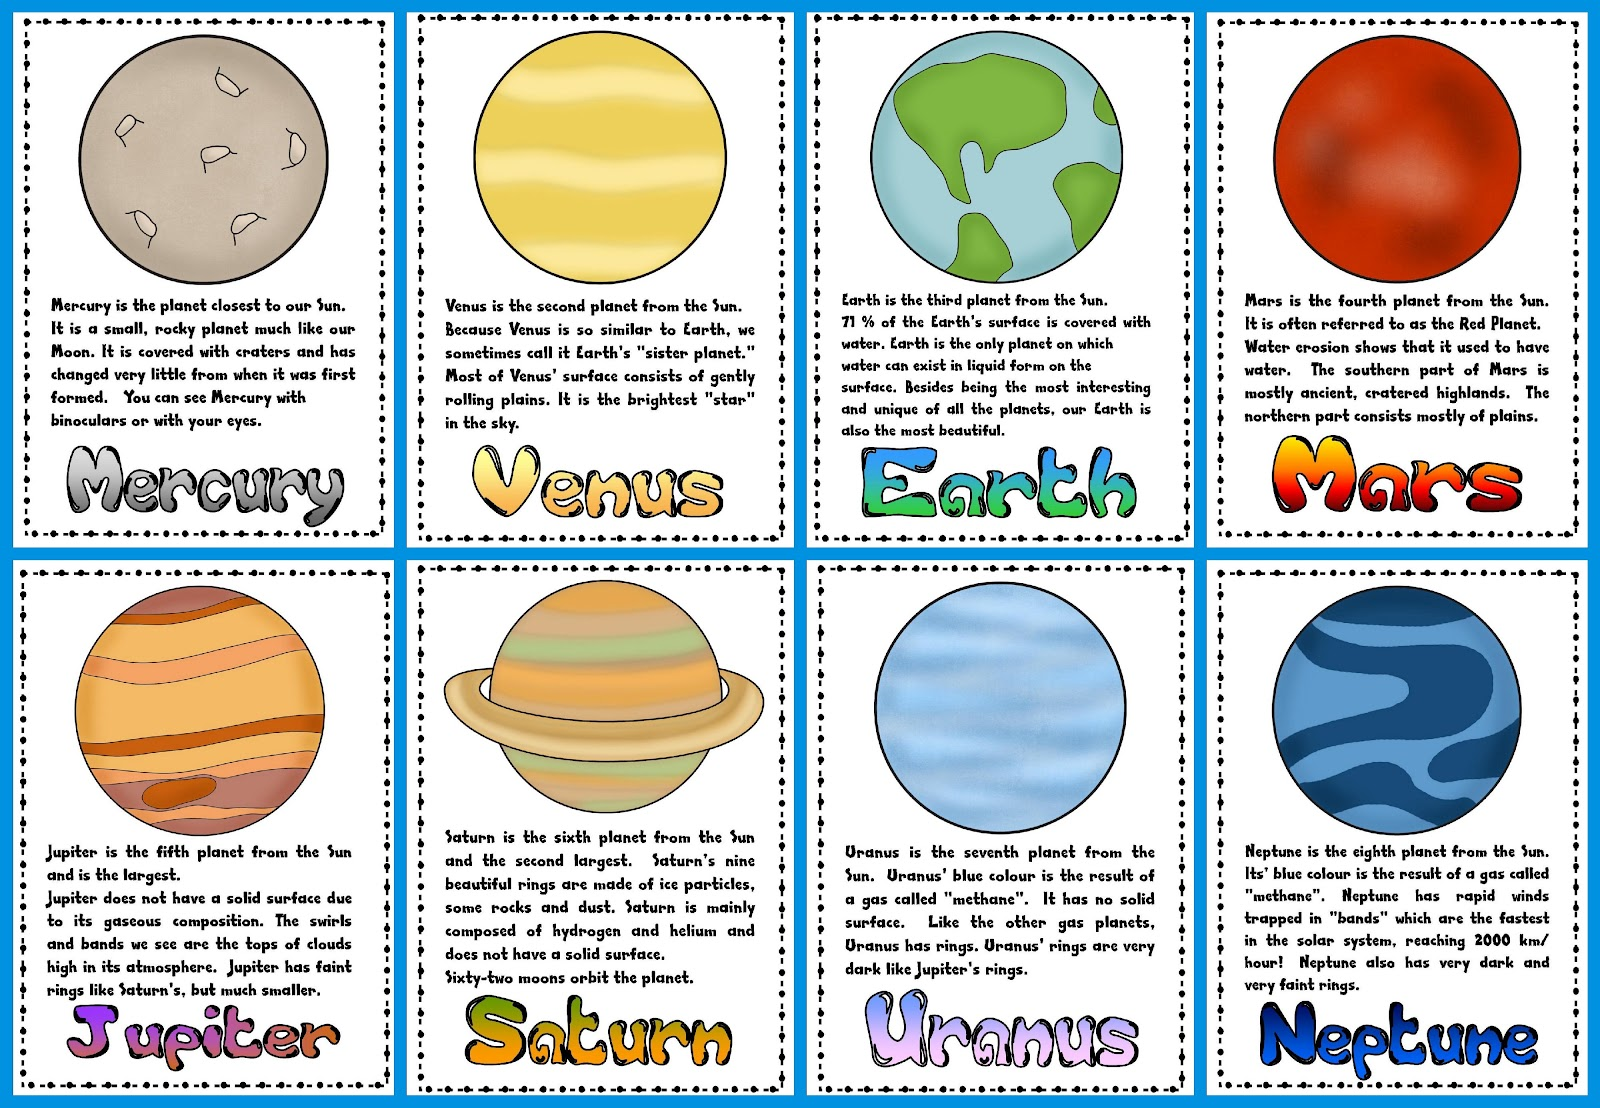 Planets clipart 9 planet. The clip art page